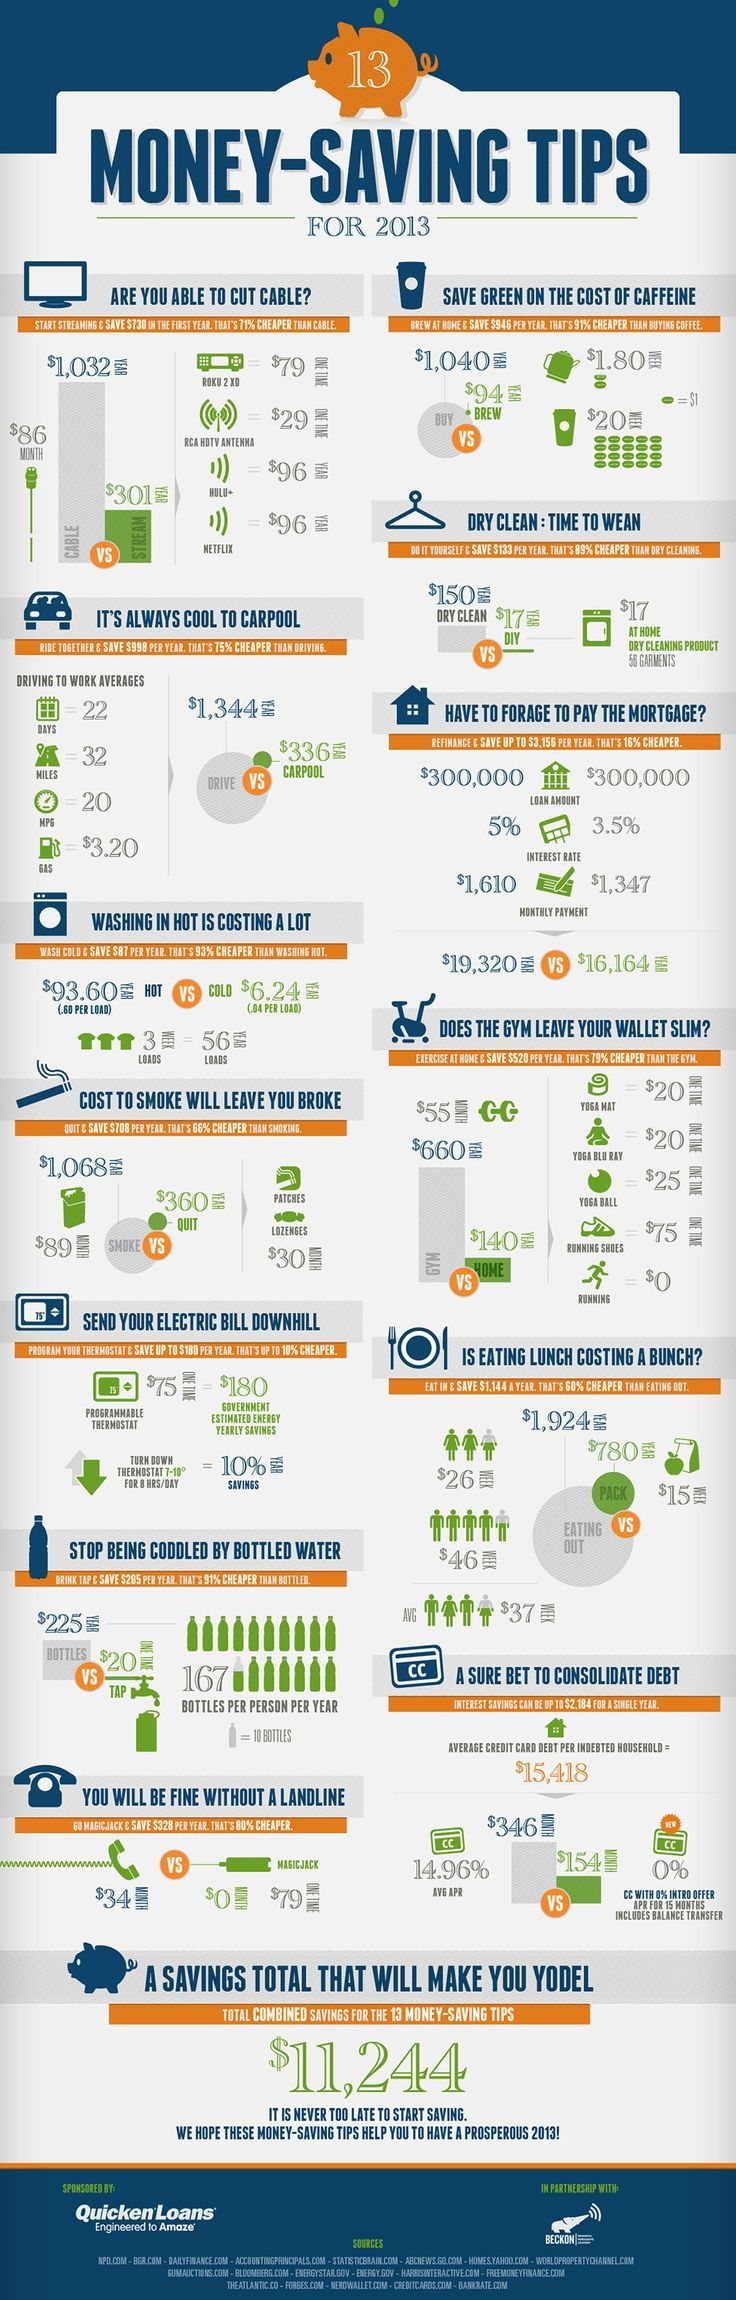 Personal Finance Tips 2013 - Ways to cut everyday costs - At http://infographicsmania.com #Money #Saving #Finances